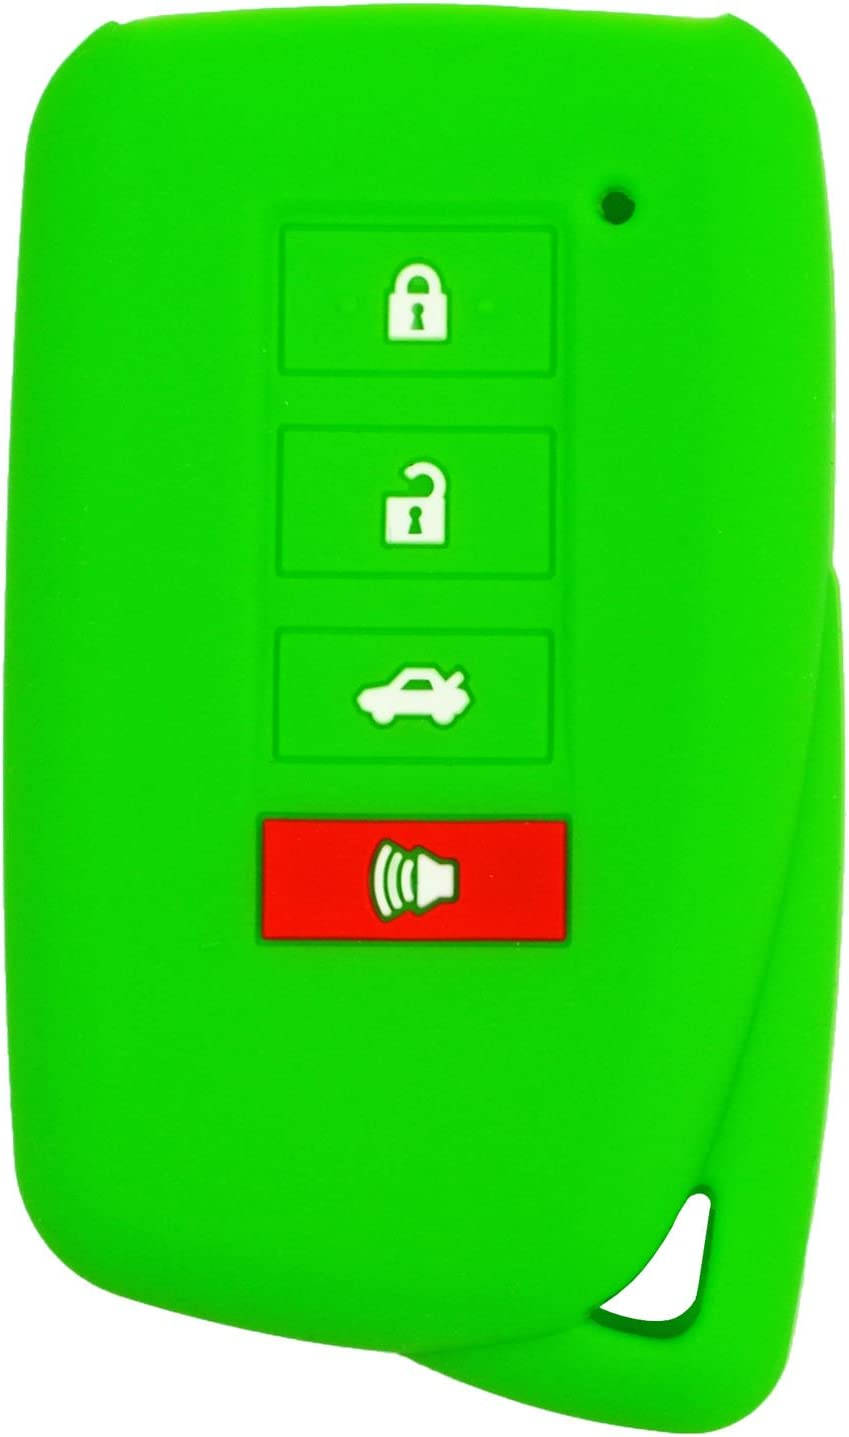 qualitykeylessplus Green Silicone//Rubber Protective Cover for Lexus 4 Button Remotes with Free KEYTAG